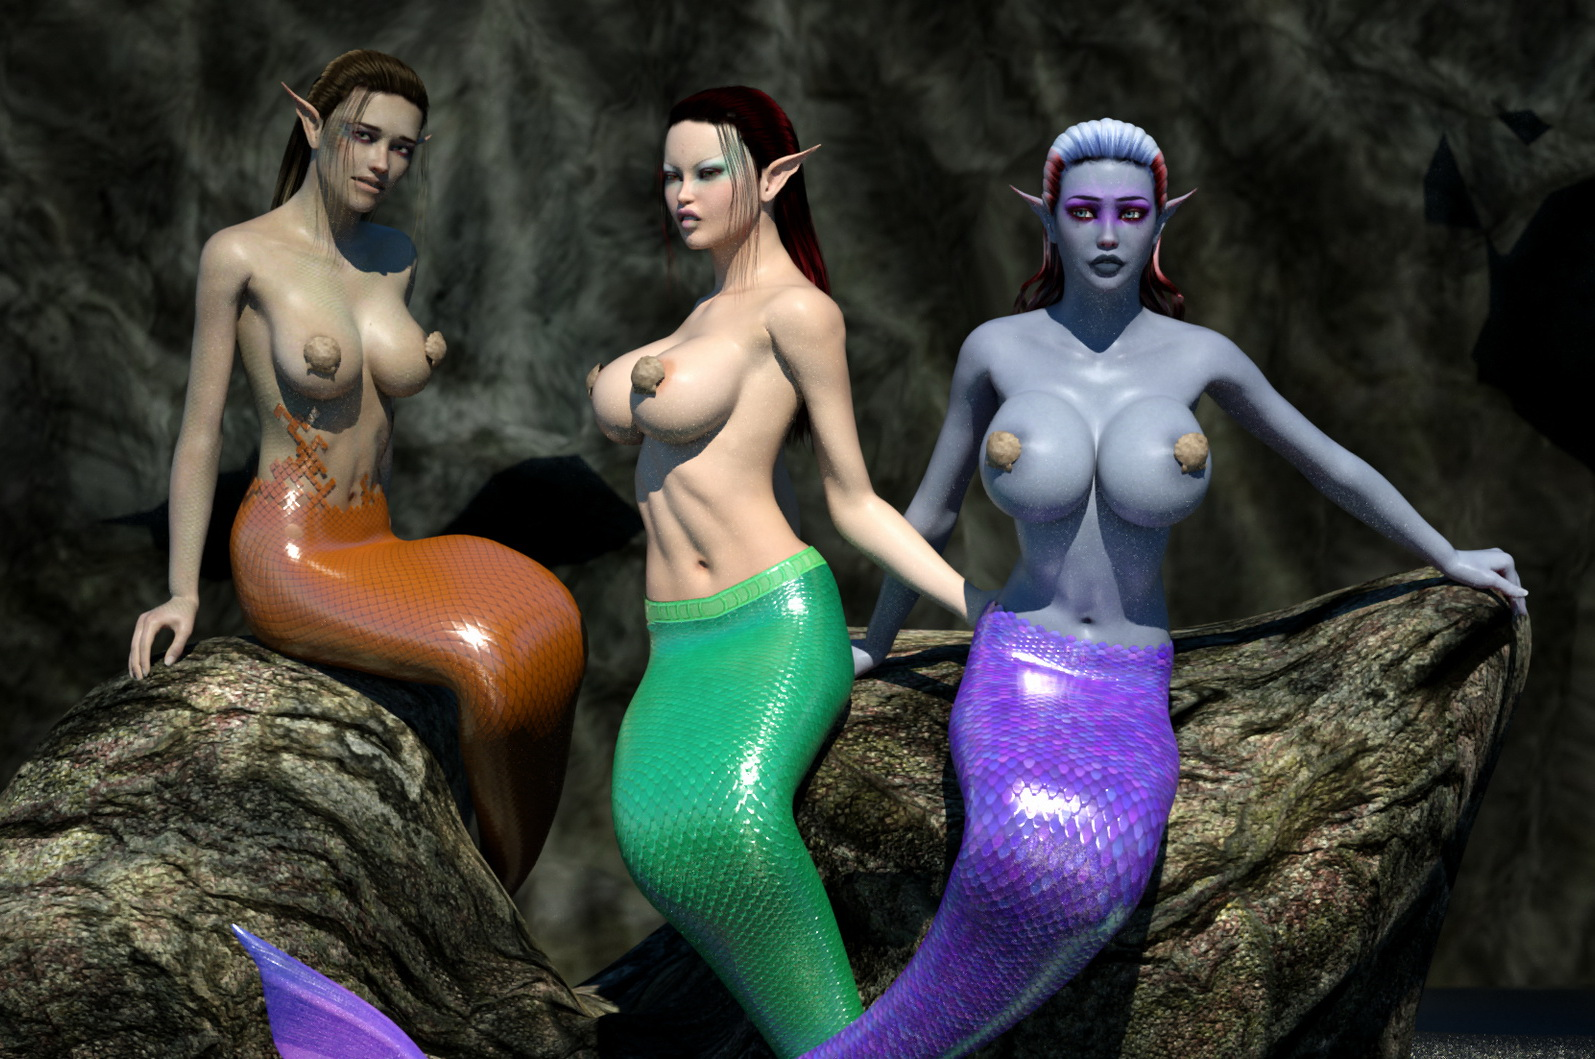 Sexy mermaids with naked boobs naked photos